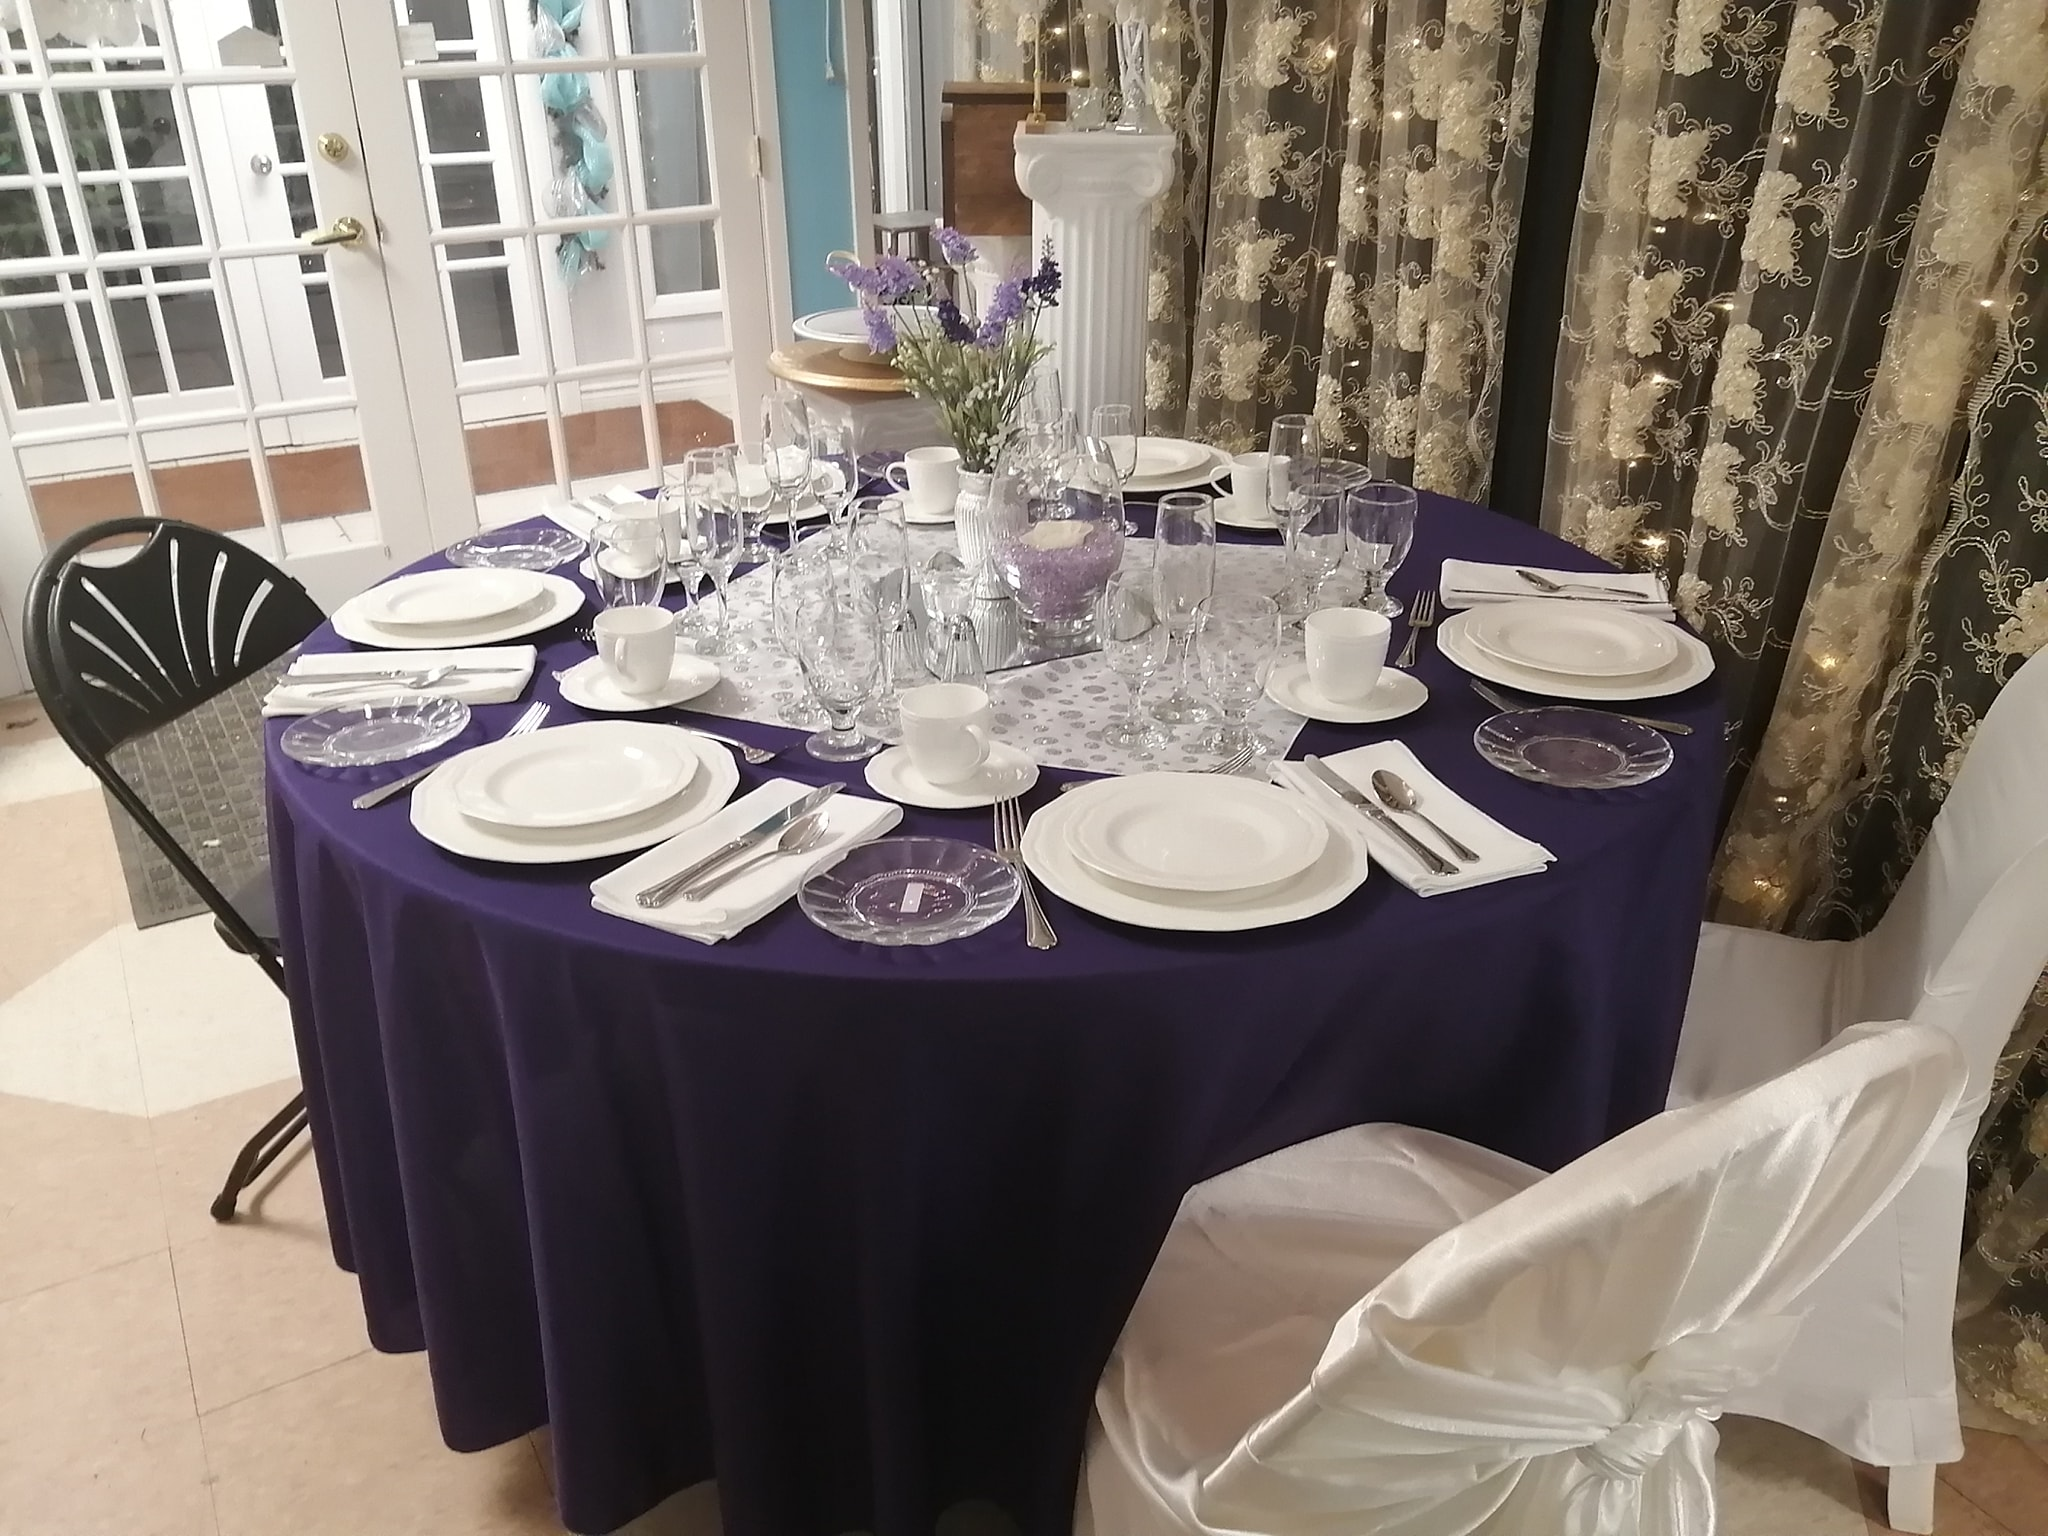 8 Guest Table Place Setting - Showroom Example